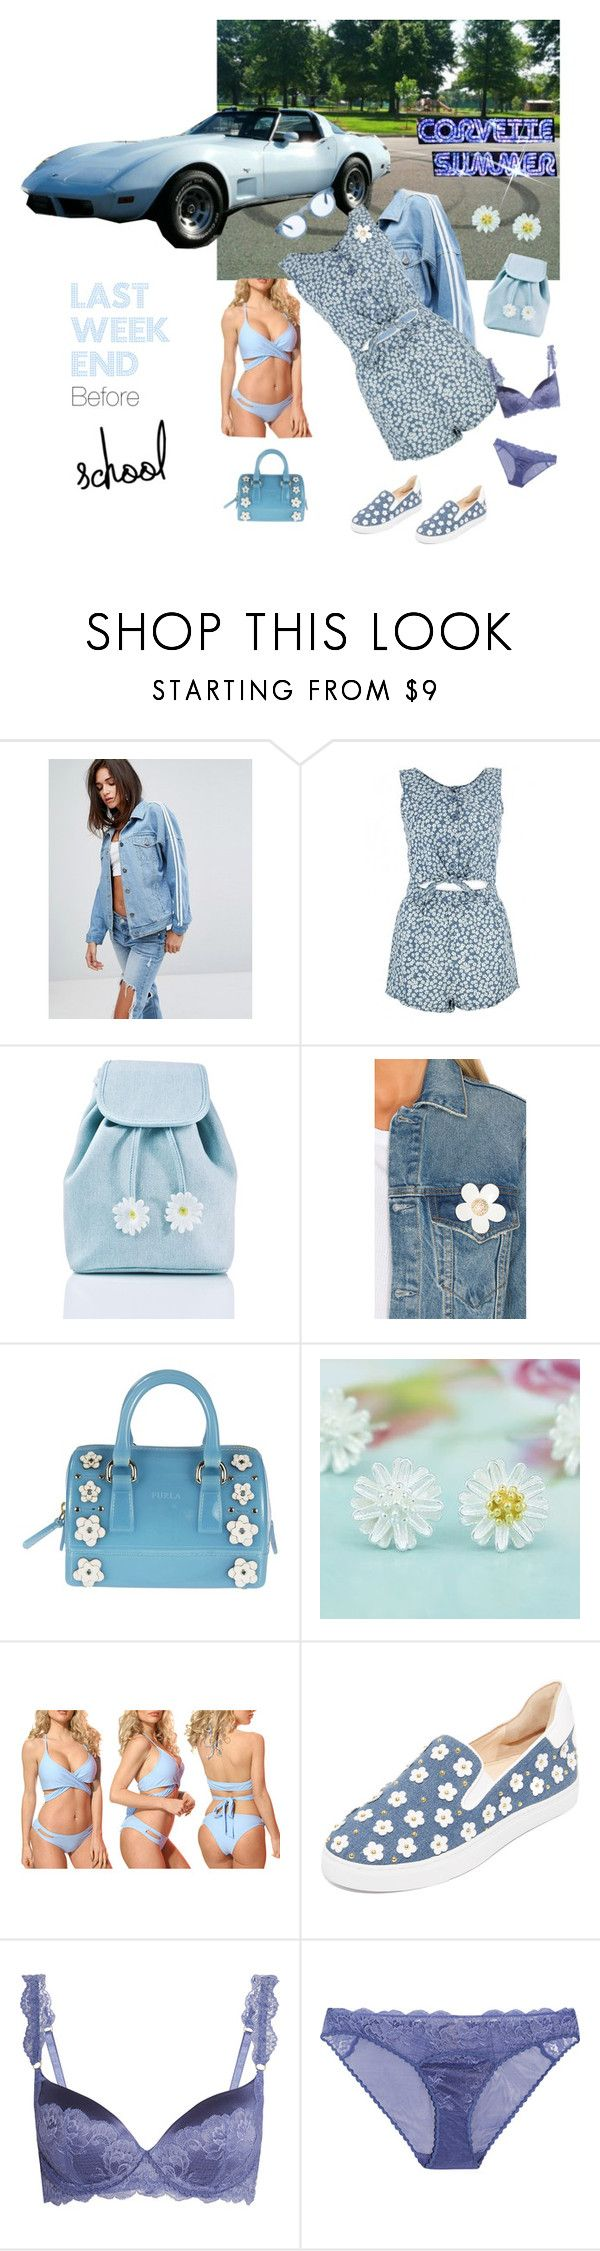 """""""Corvette Summer"""" by cinpet ❤ liked on Polyvore featuring Daisy Street, Sugarbaby, Marc Jacobs, Furla, Dippin' Daisy's, Isa Tapia, STELLA McCARTNEY and RetroSuperFuture"""